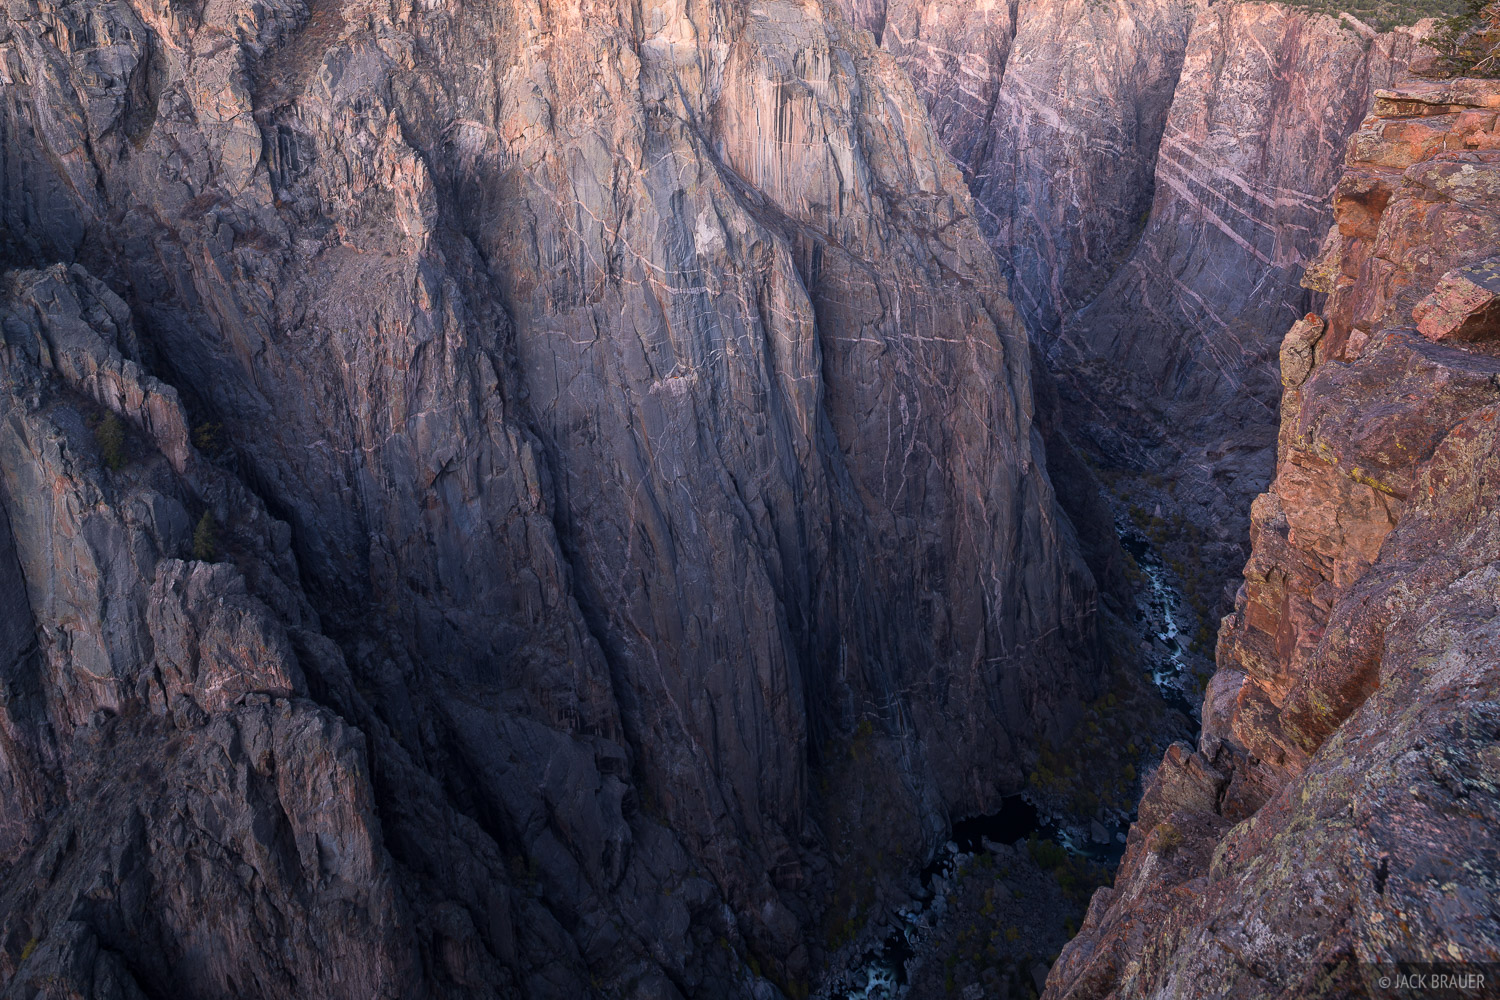 Looking 2,000 feet straight down vertical cliffs to the Gunnison River. The walls of the Black Canyon are composed of 1.8 billion...